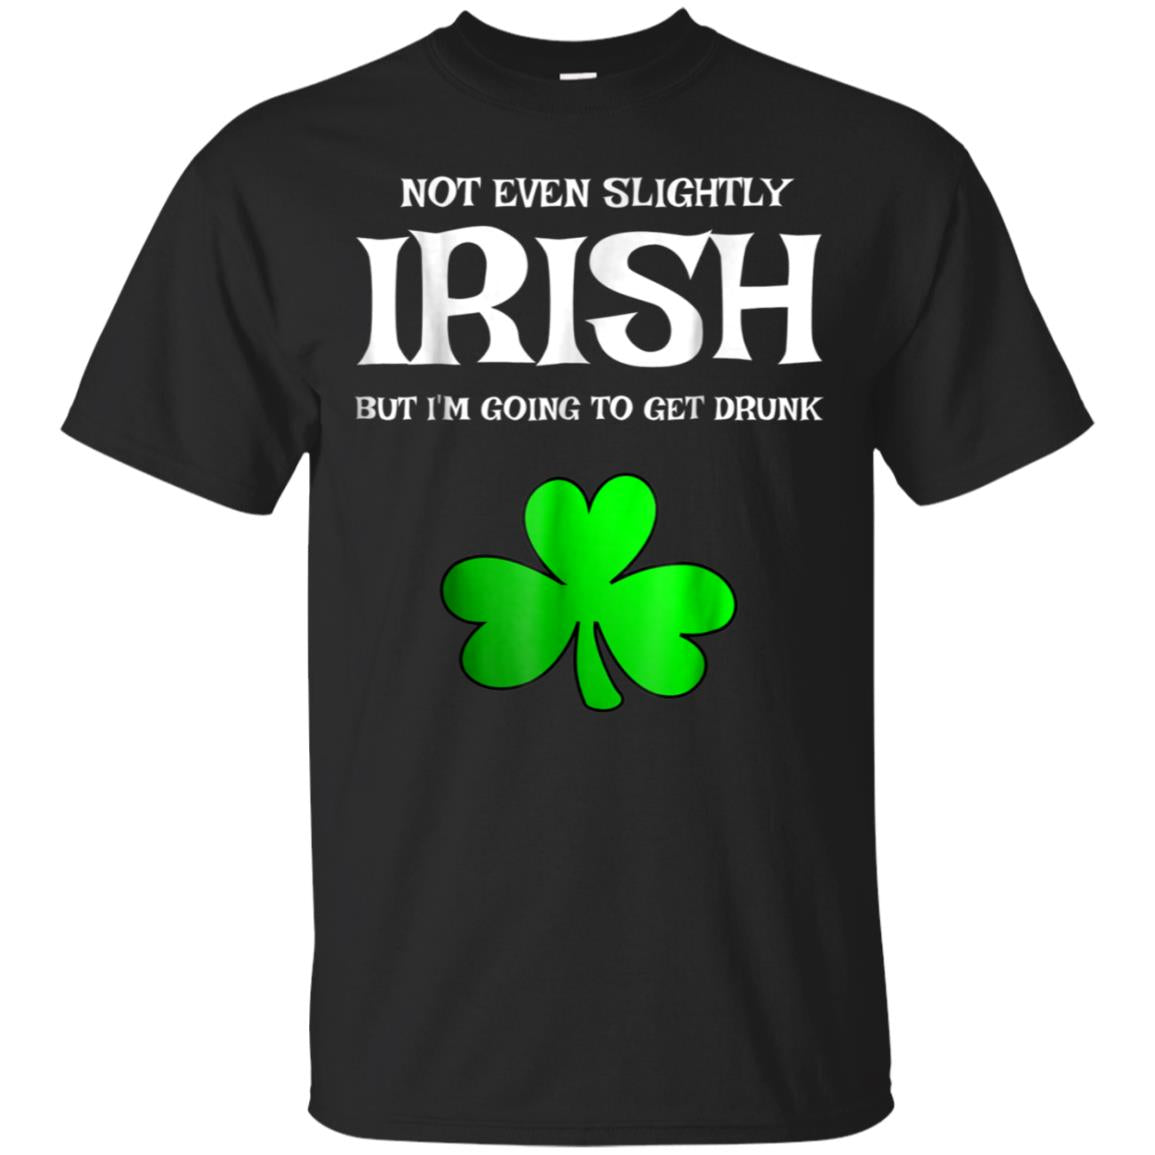 Not Even Slightly Irish But I'm Going To Get Drunk T-Shirt 99promocode